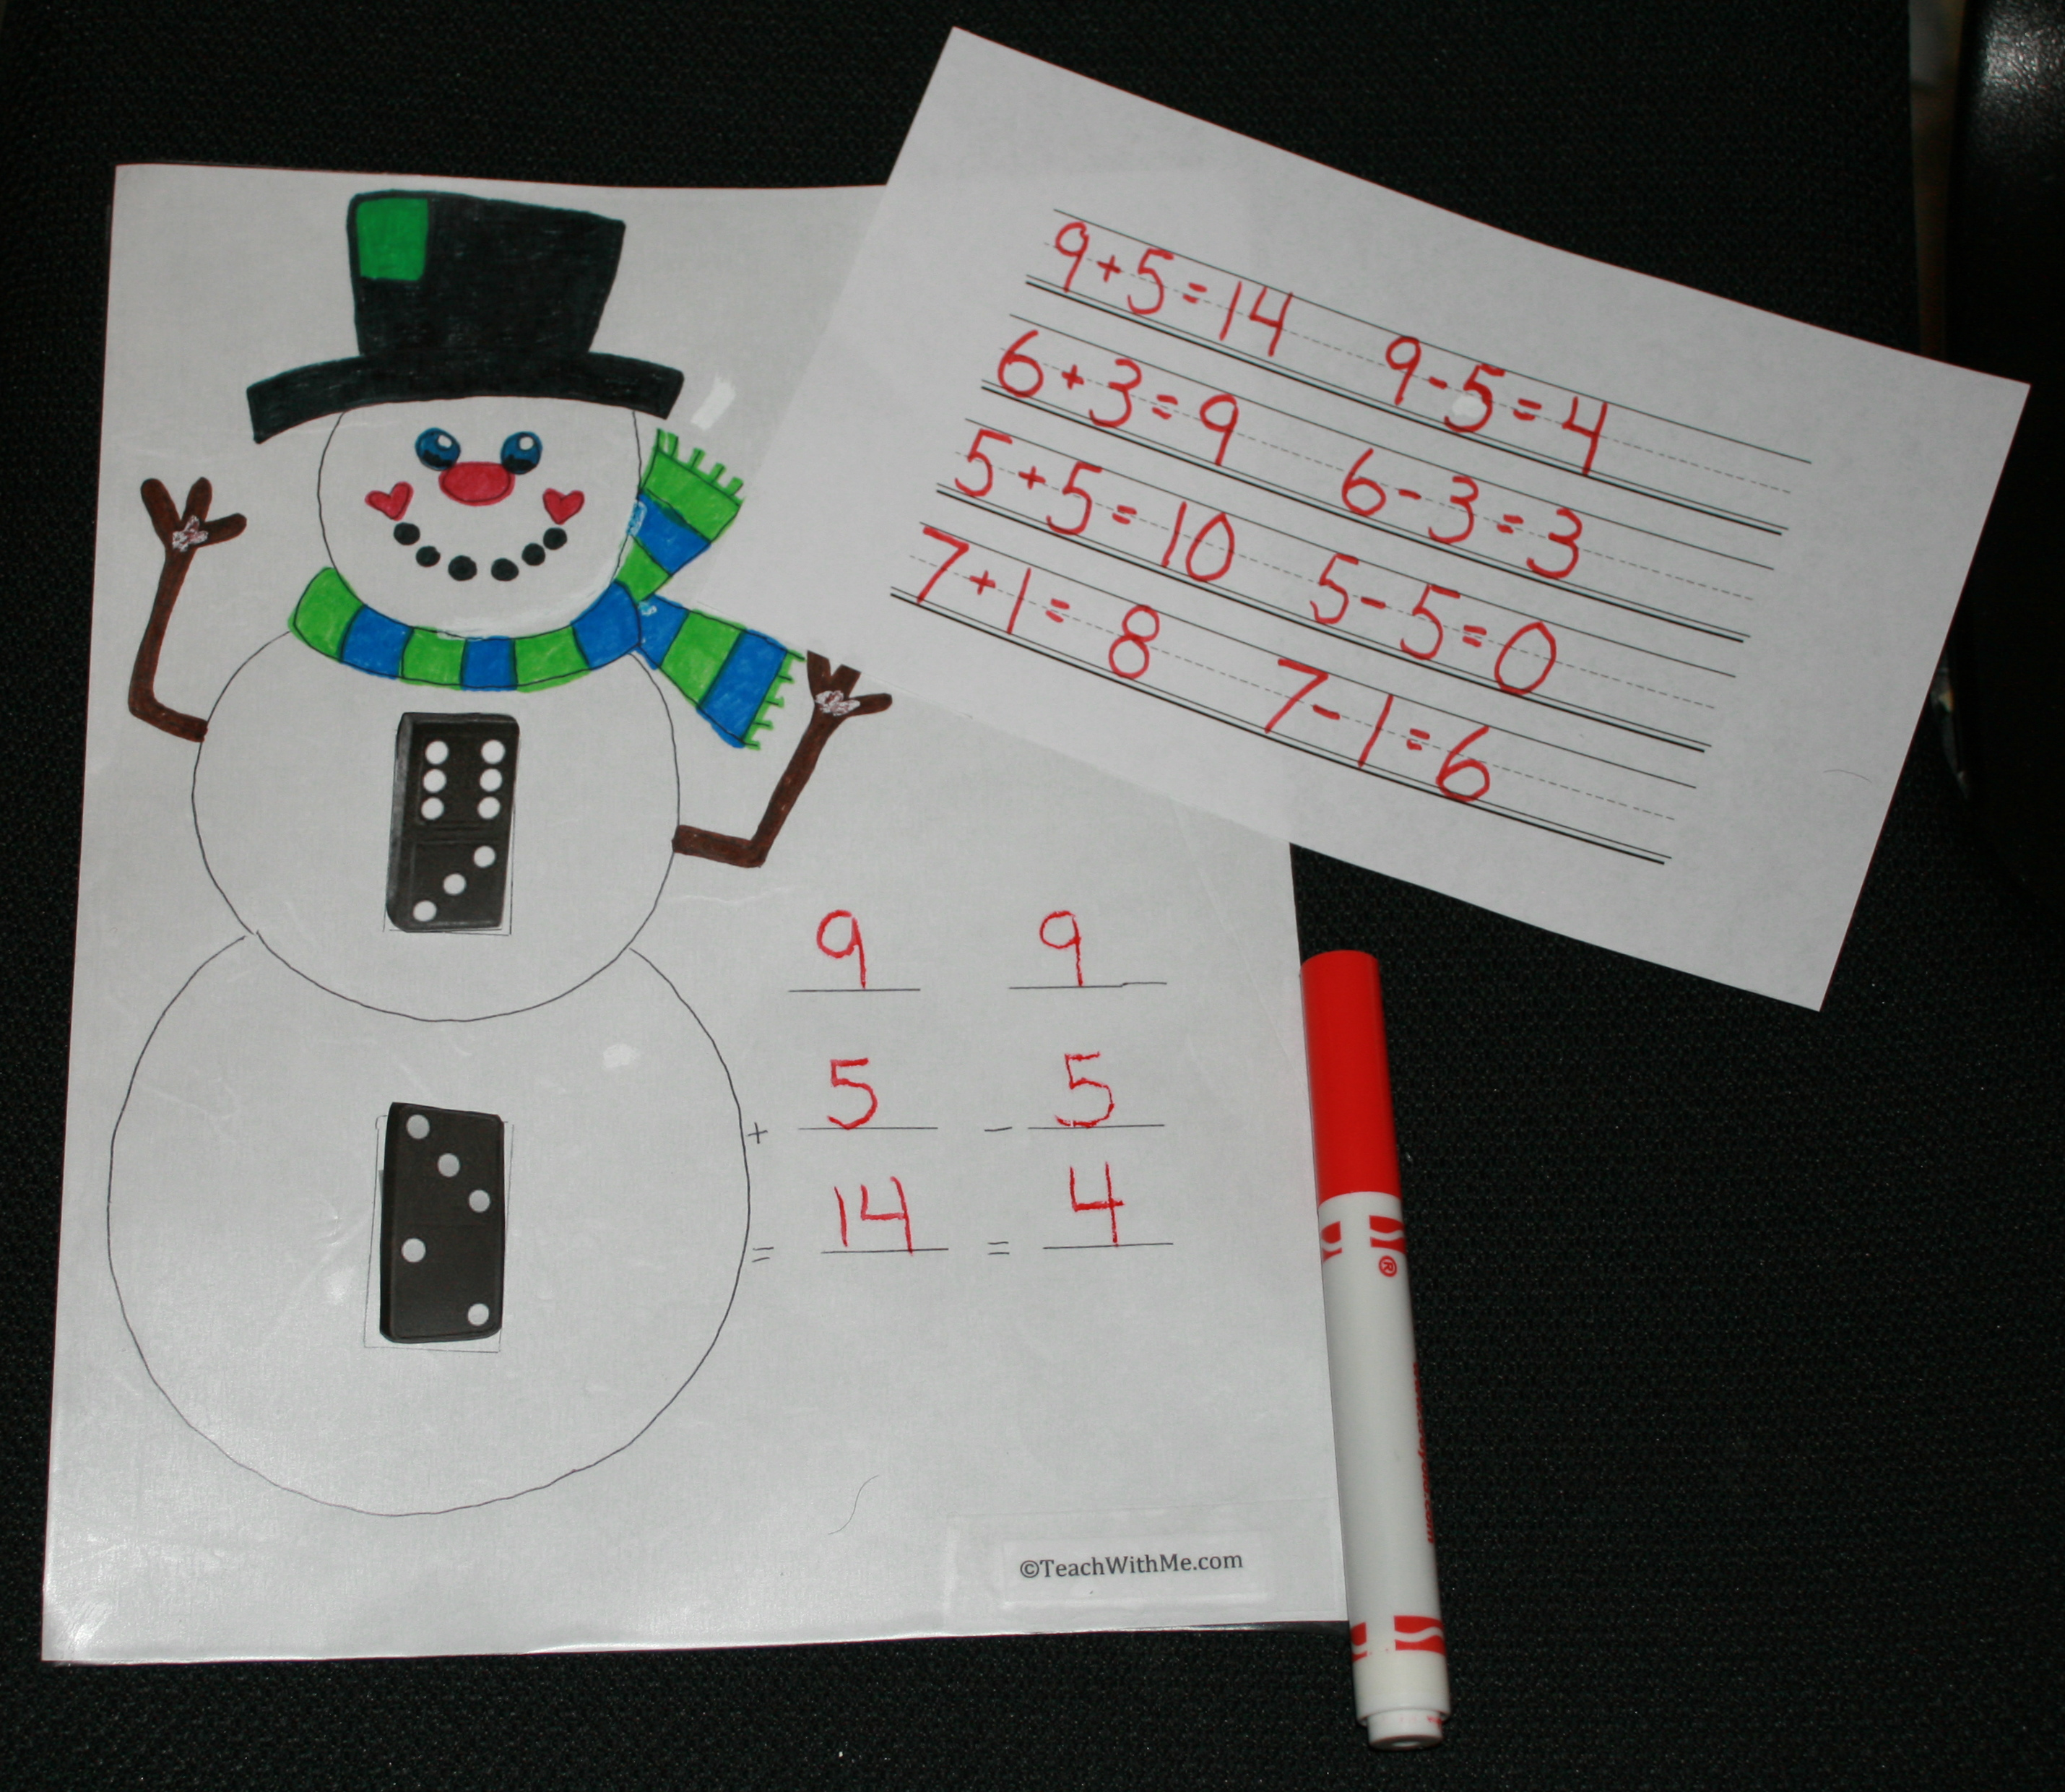 christmas tree crafts, christmas tree activities, christmas tree puzzles, christmas tree games, skip counting activities, counting backwards activities, activities for skip counting by 2s, 3s, 5s and 10s, common core christmas, common core snowmen, snowmen centers, snowman games, snowman centers, snowman crafts, snowman puzzles, daily 5 for winter, addition and subtraction games, winter math games, shape activites, shape games, snowman shapes, hexagon activities, gingerbread shapes, gingerbread activities